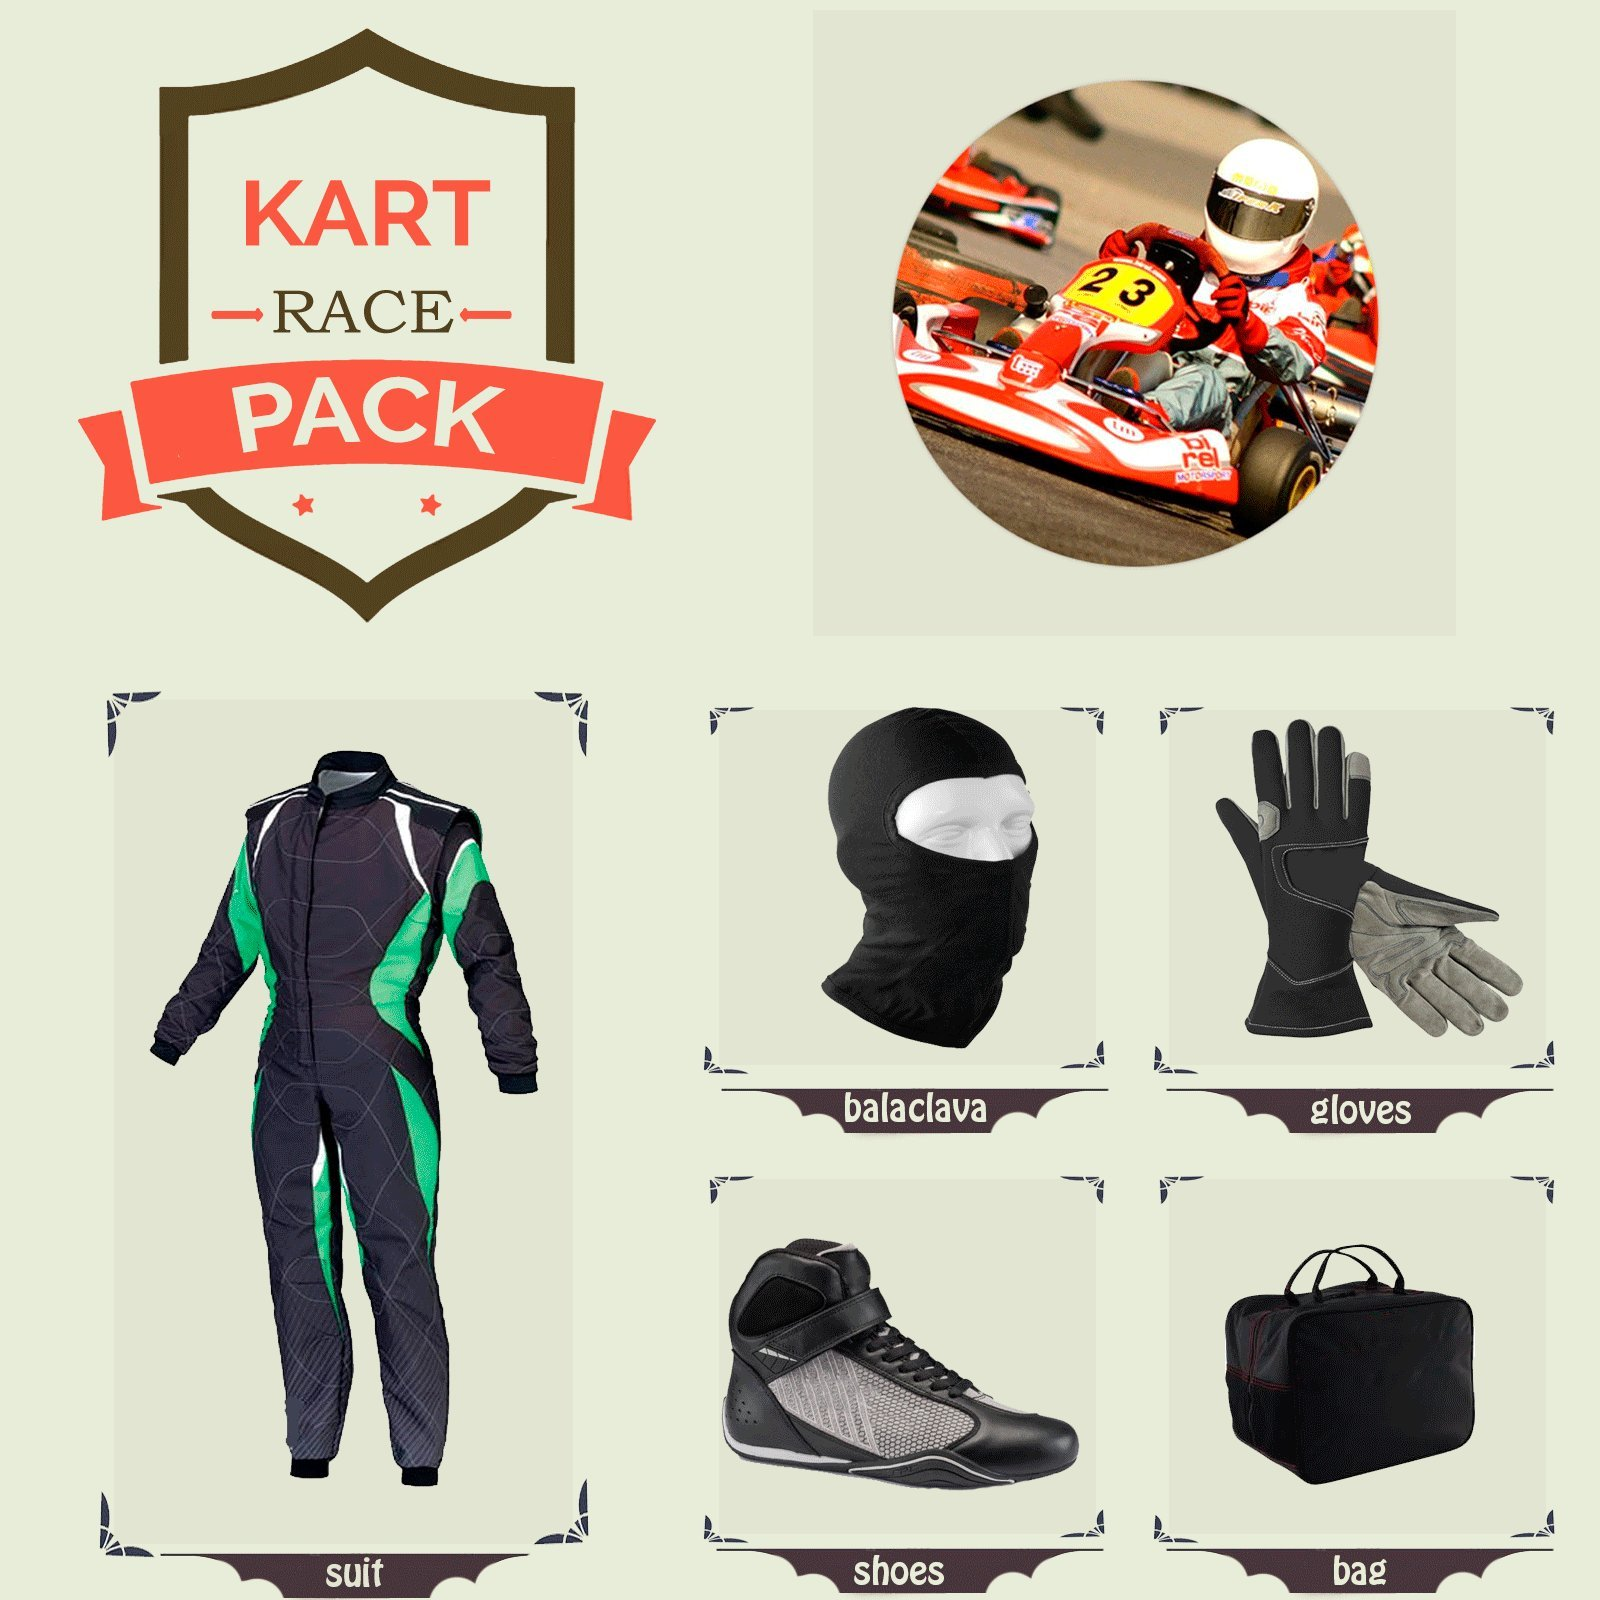 Sports Blue Go Kart Racing Suit Suit,Gloves,Balaclava and Shoes free bag - Black With Green White Style